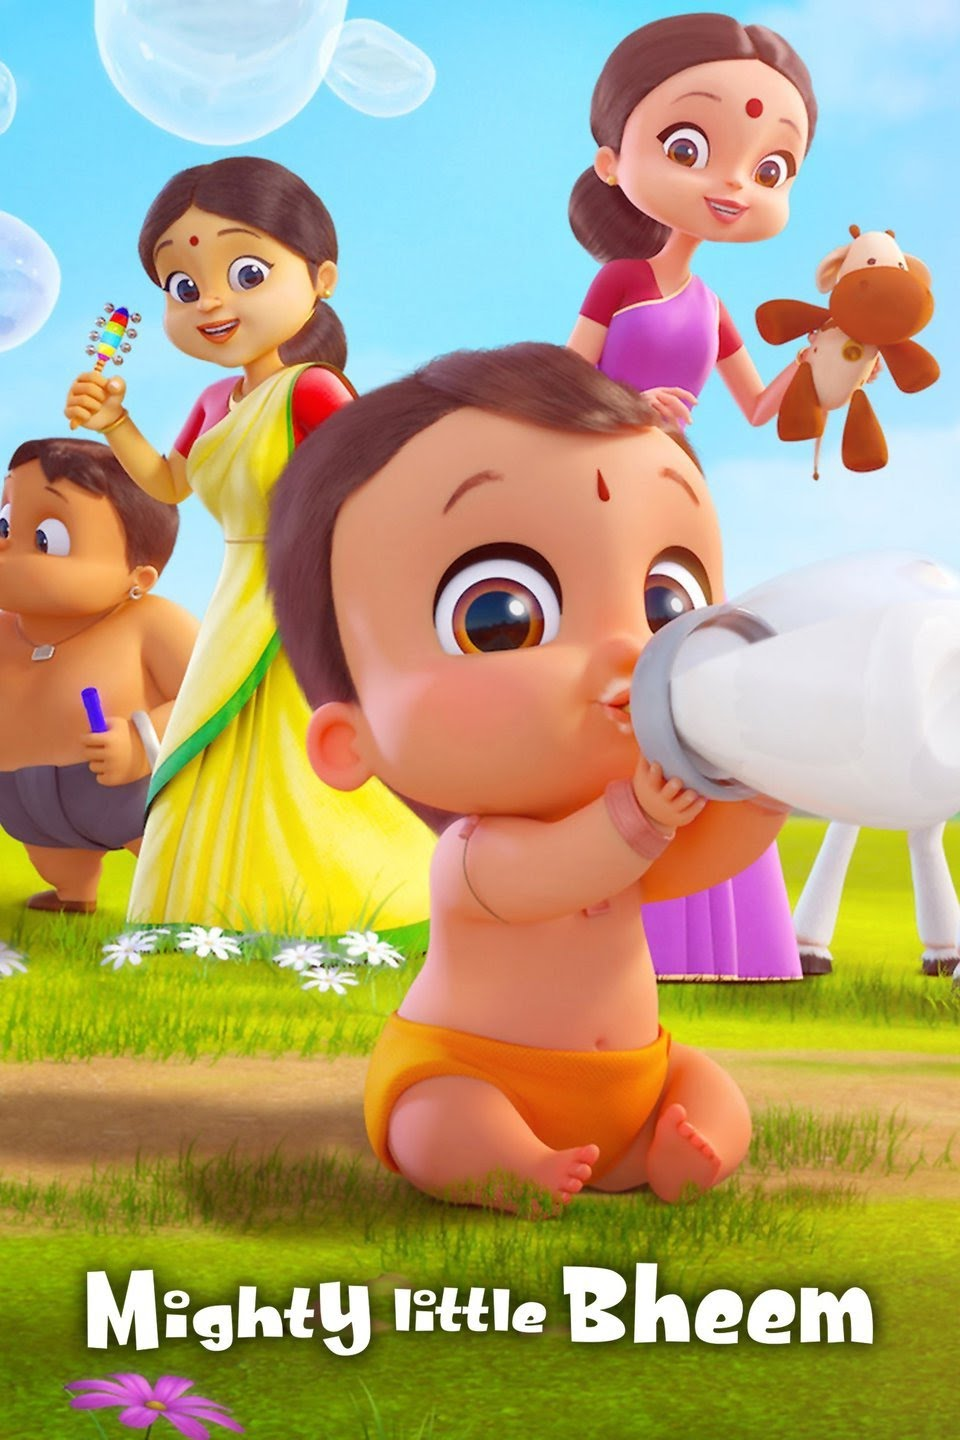 Mighty Little Bheem Season 3 1080p NF WEB-DL DDP5.1 x264 – Telly